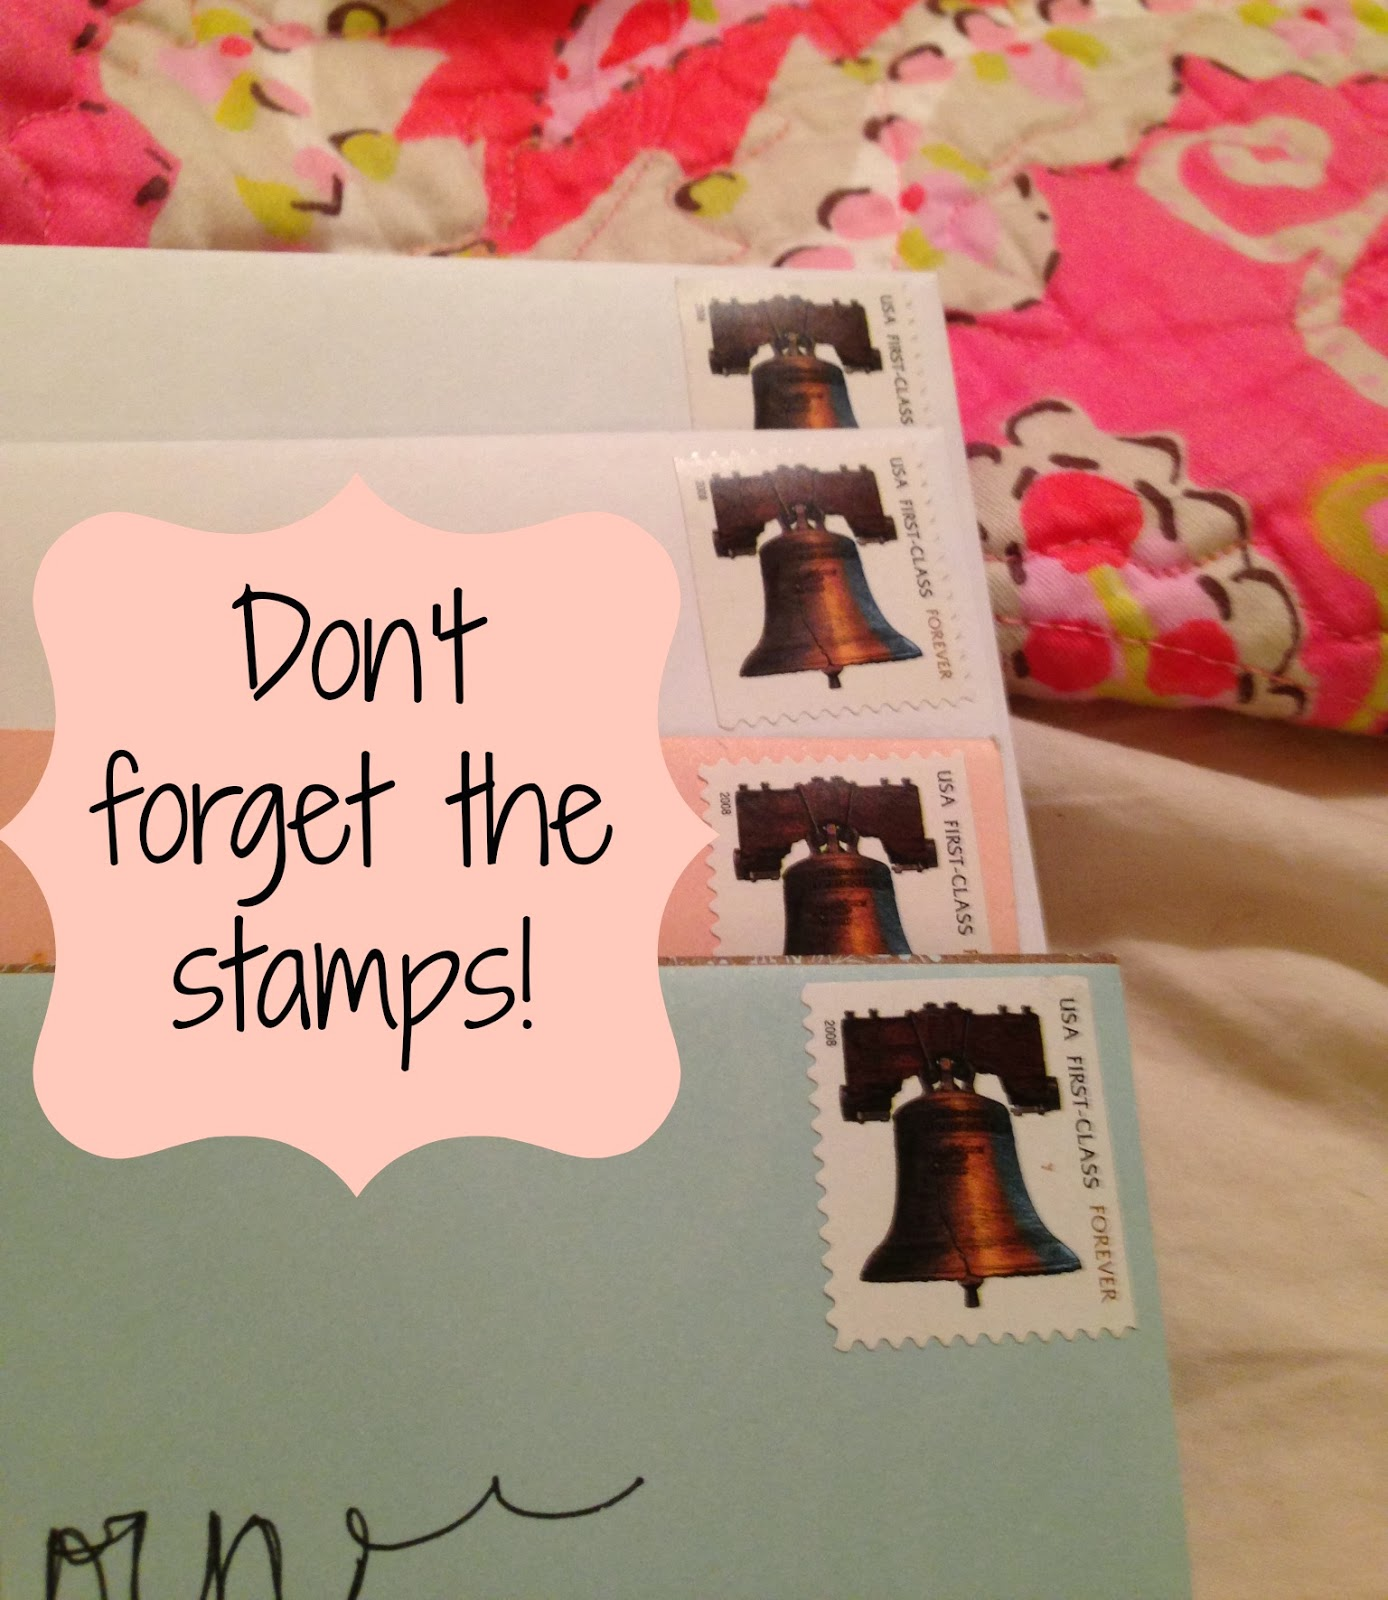 Don't forget the stamps when snail mailing